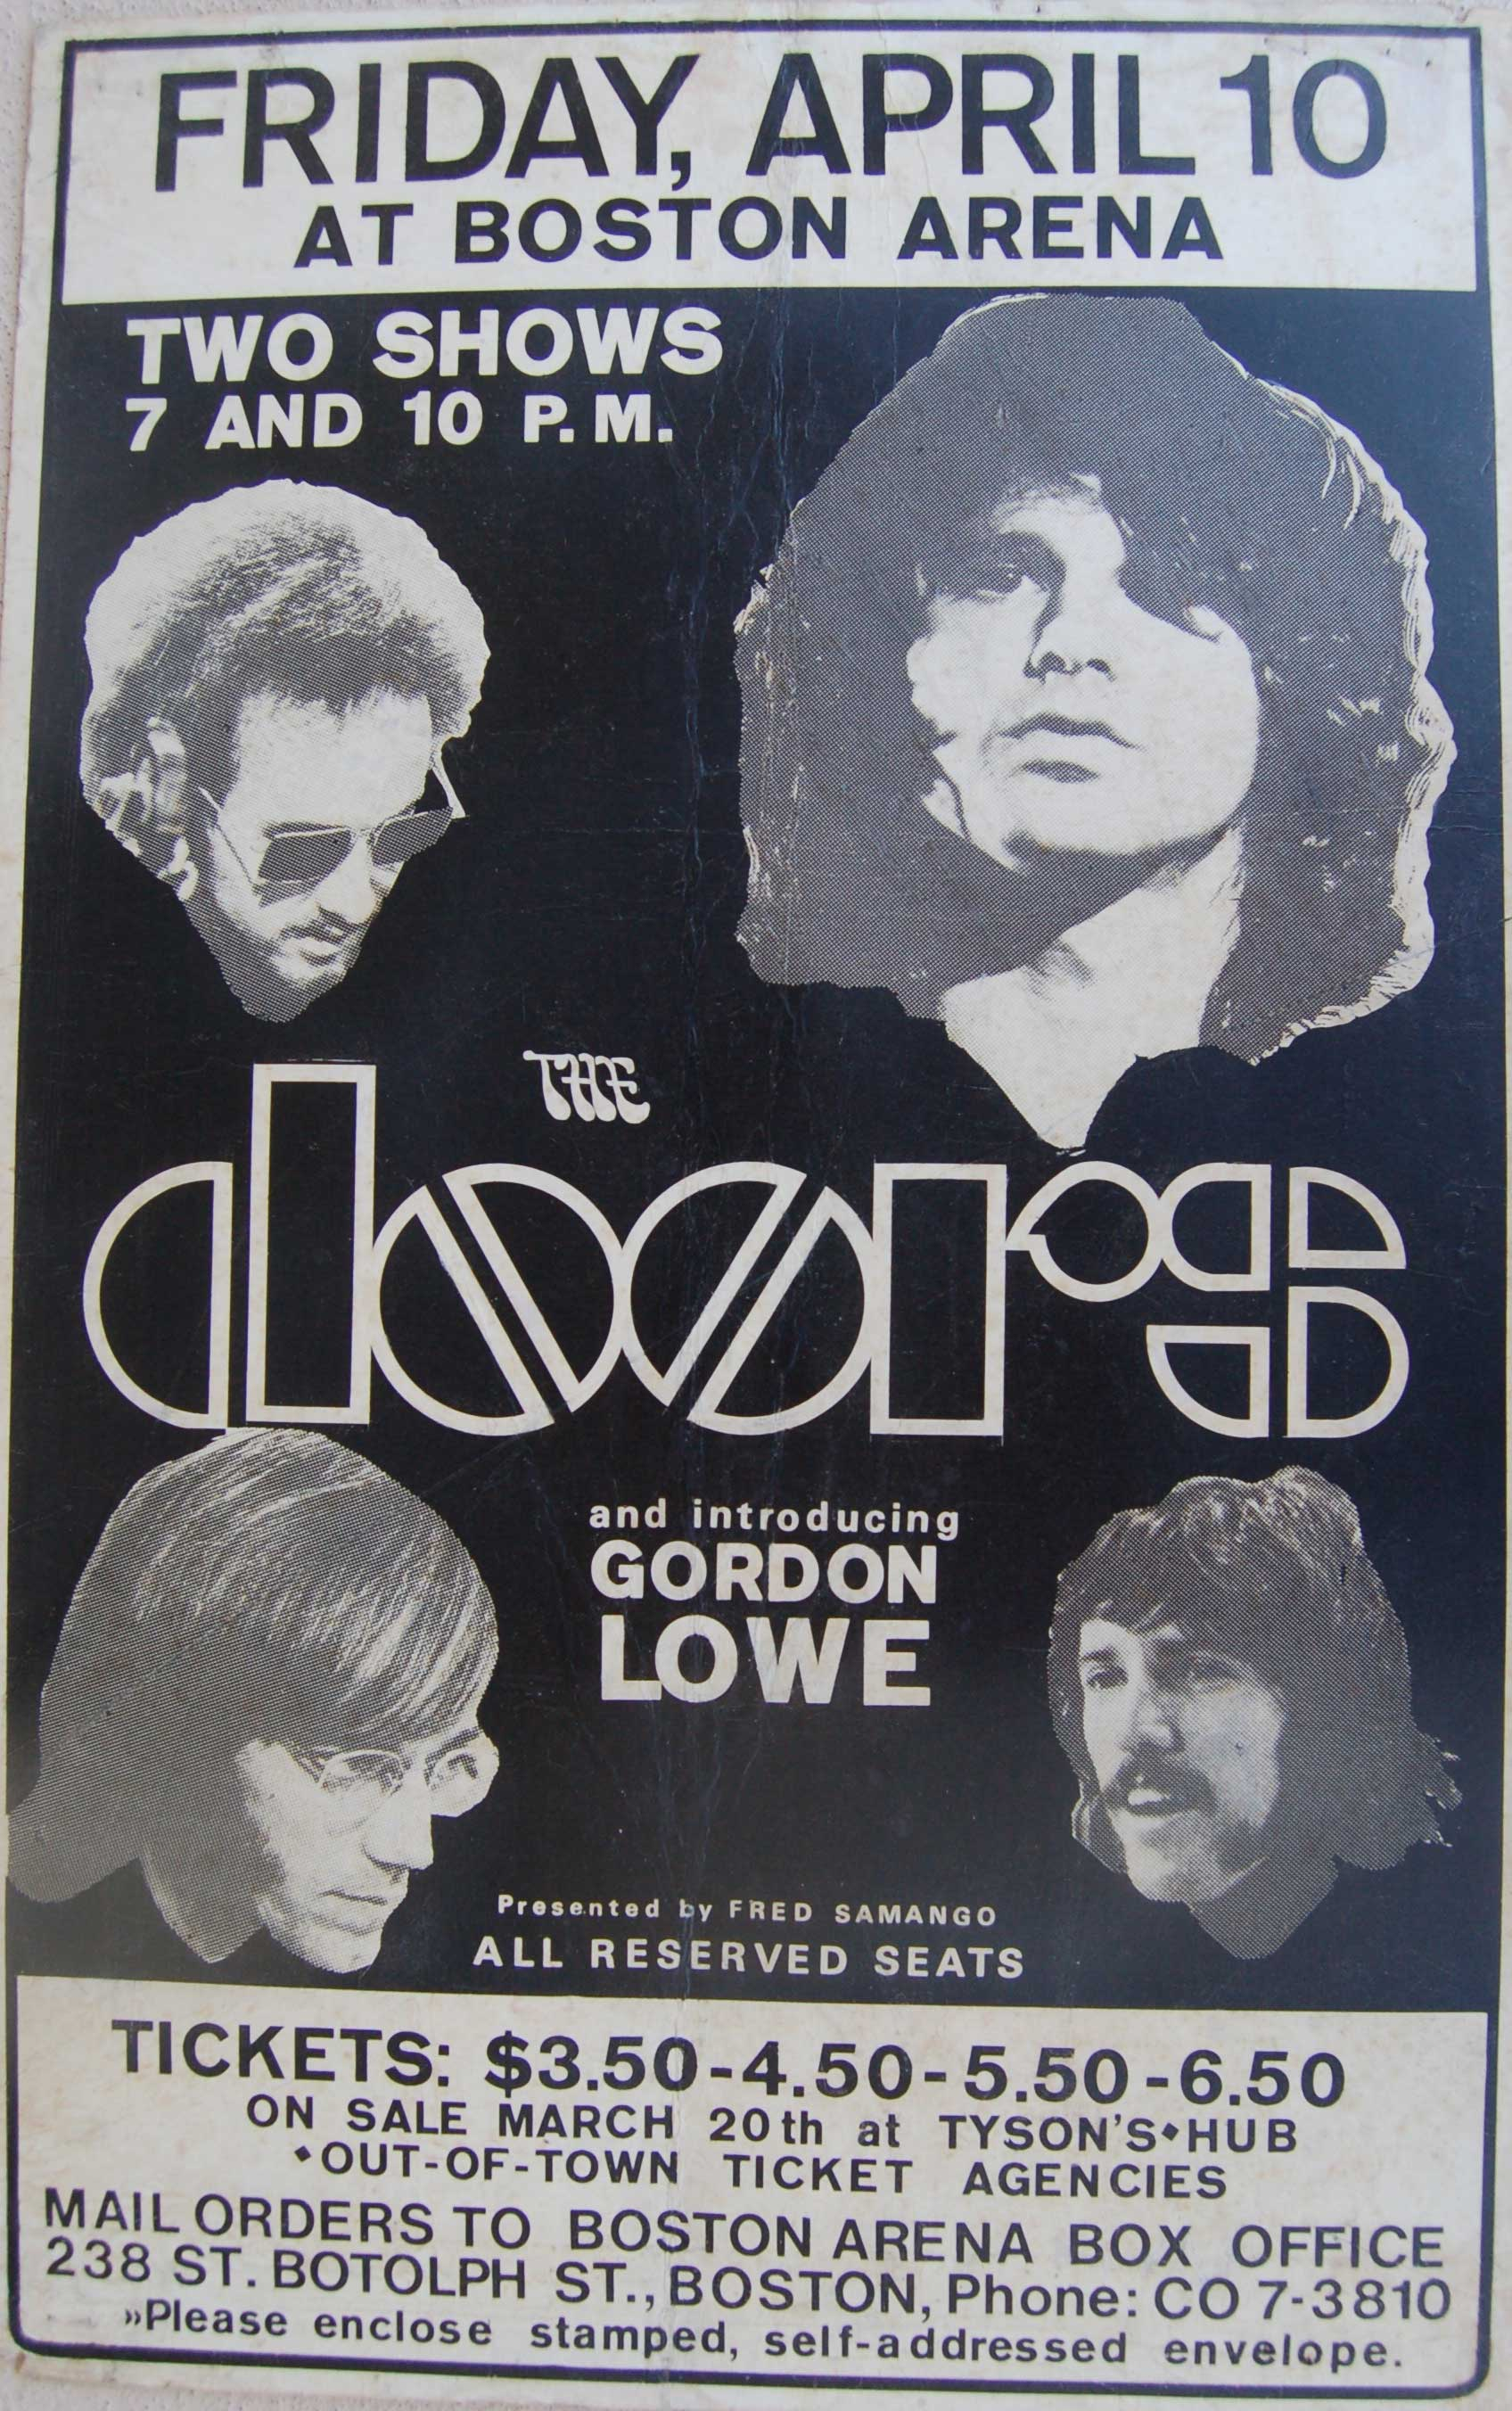 Avid Collector Announces His Search for Original 1970 Jim Morrison and the Doors Boston Arena Concert Posters  sc 1 st  PR Web & Avid Collector Announces His Search for Original 1970 Jim Morrison ...